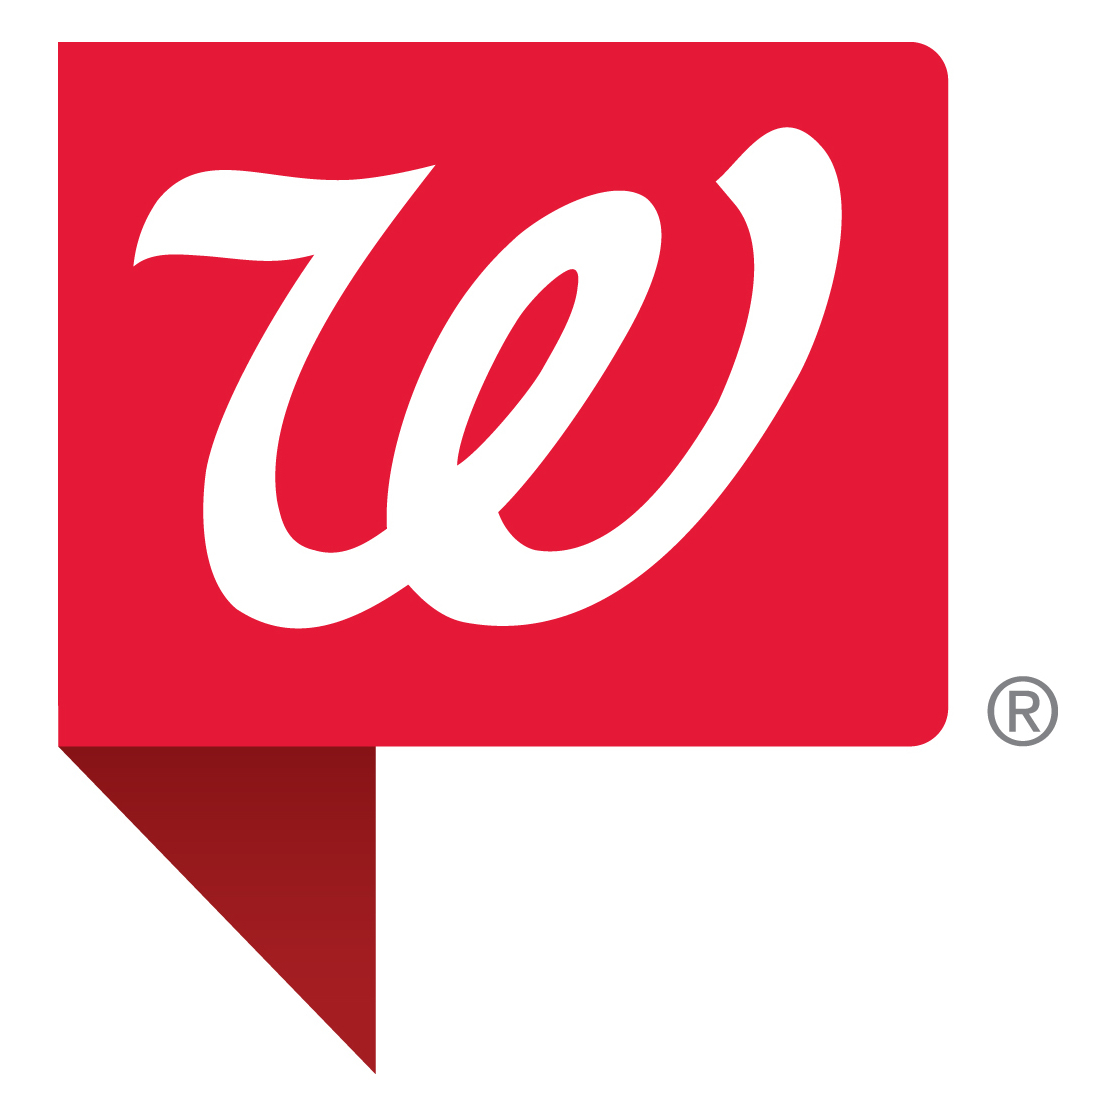 Walgreens Pharmacy at Atlanta Medical Center - Atlanta, GA - Pharmacist